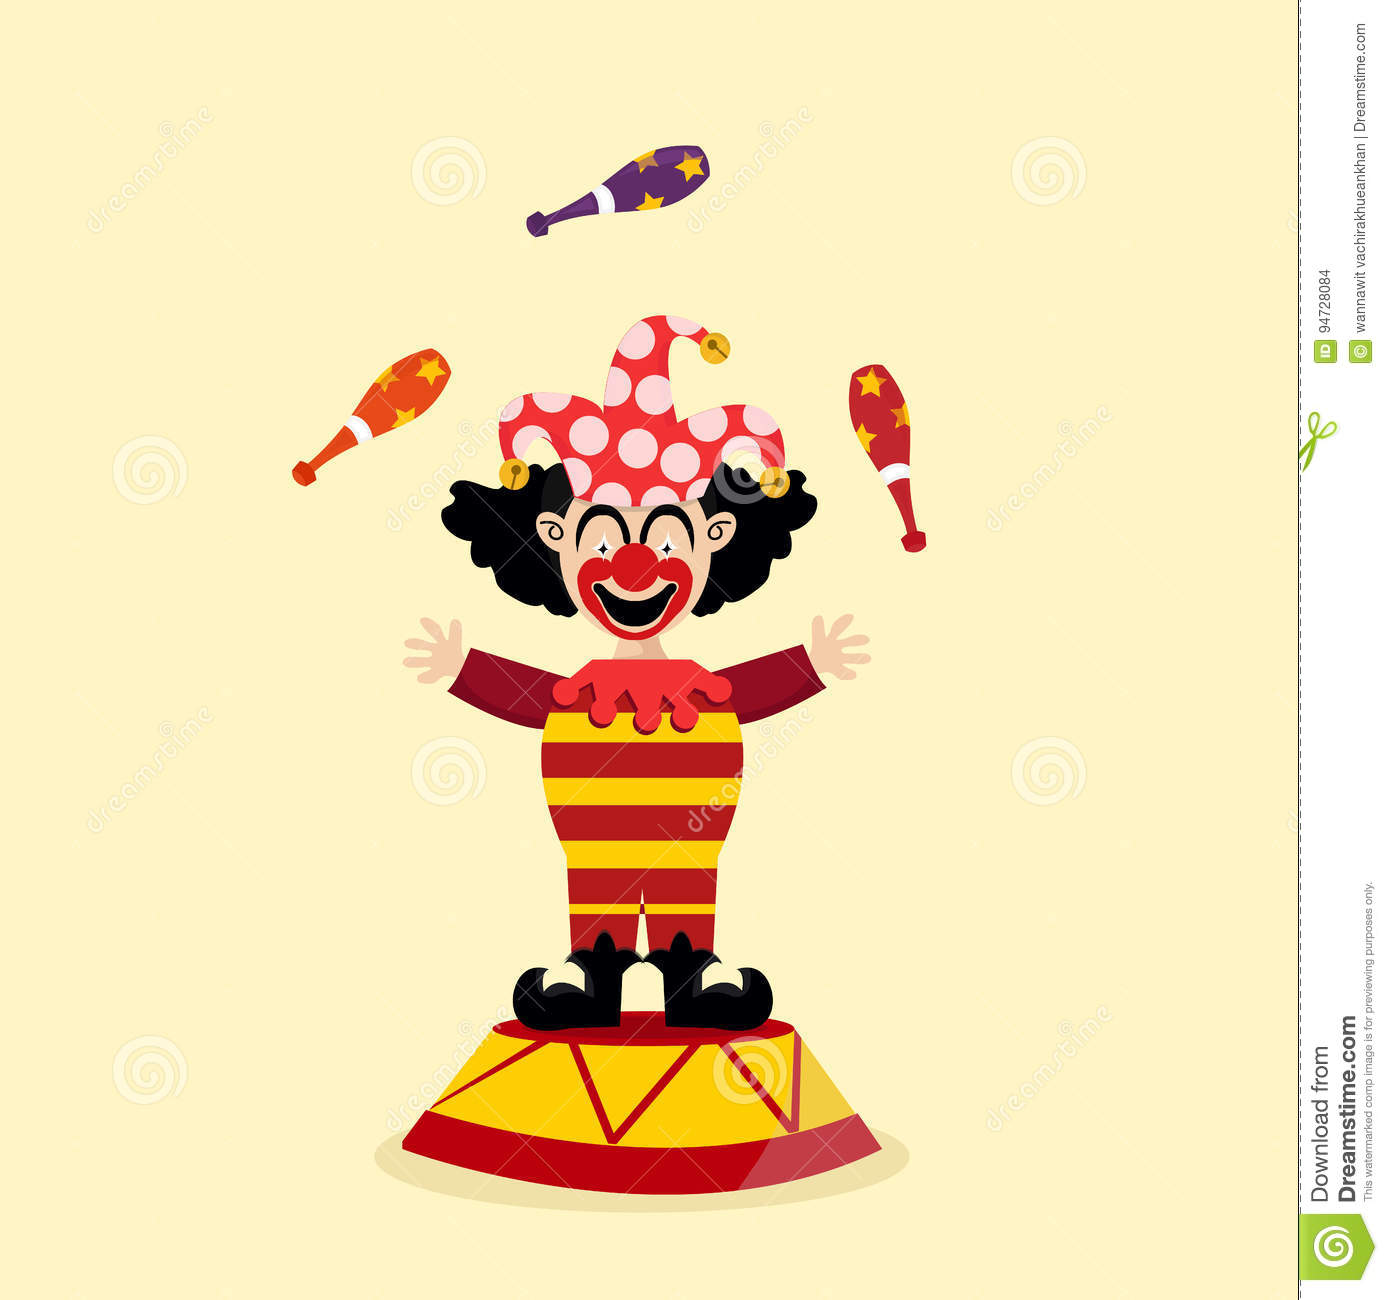 Circus Clown Illustration Stock Vector Illustration Of Collection